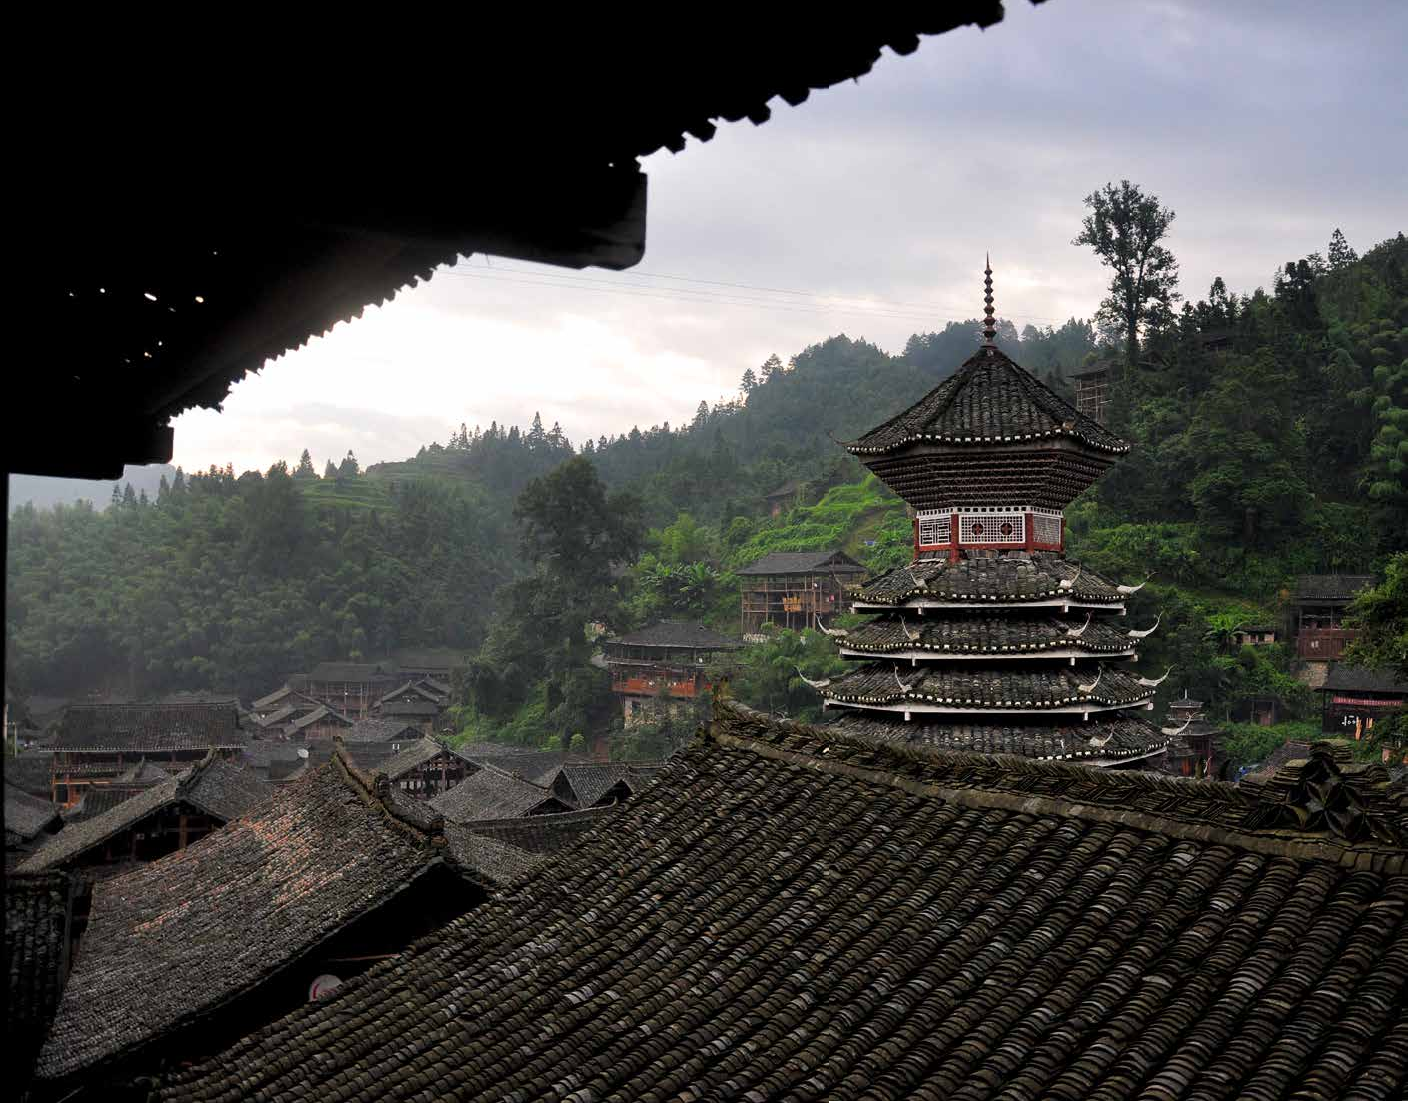 The drum tower in the Dong village of Dali, China.